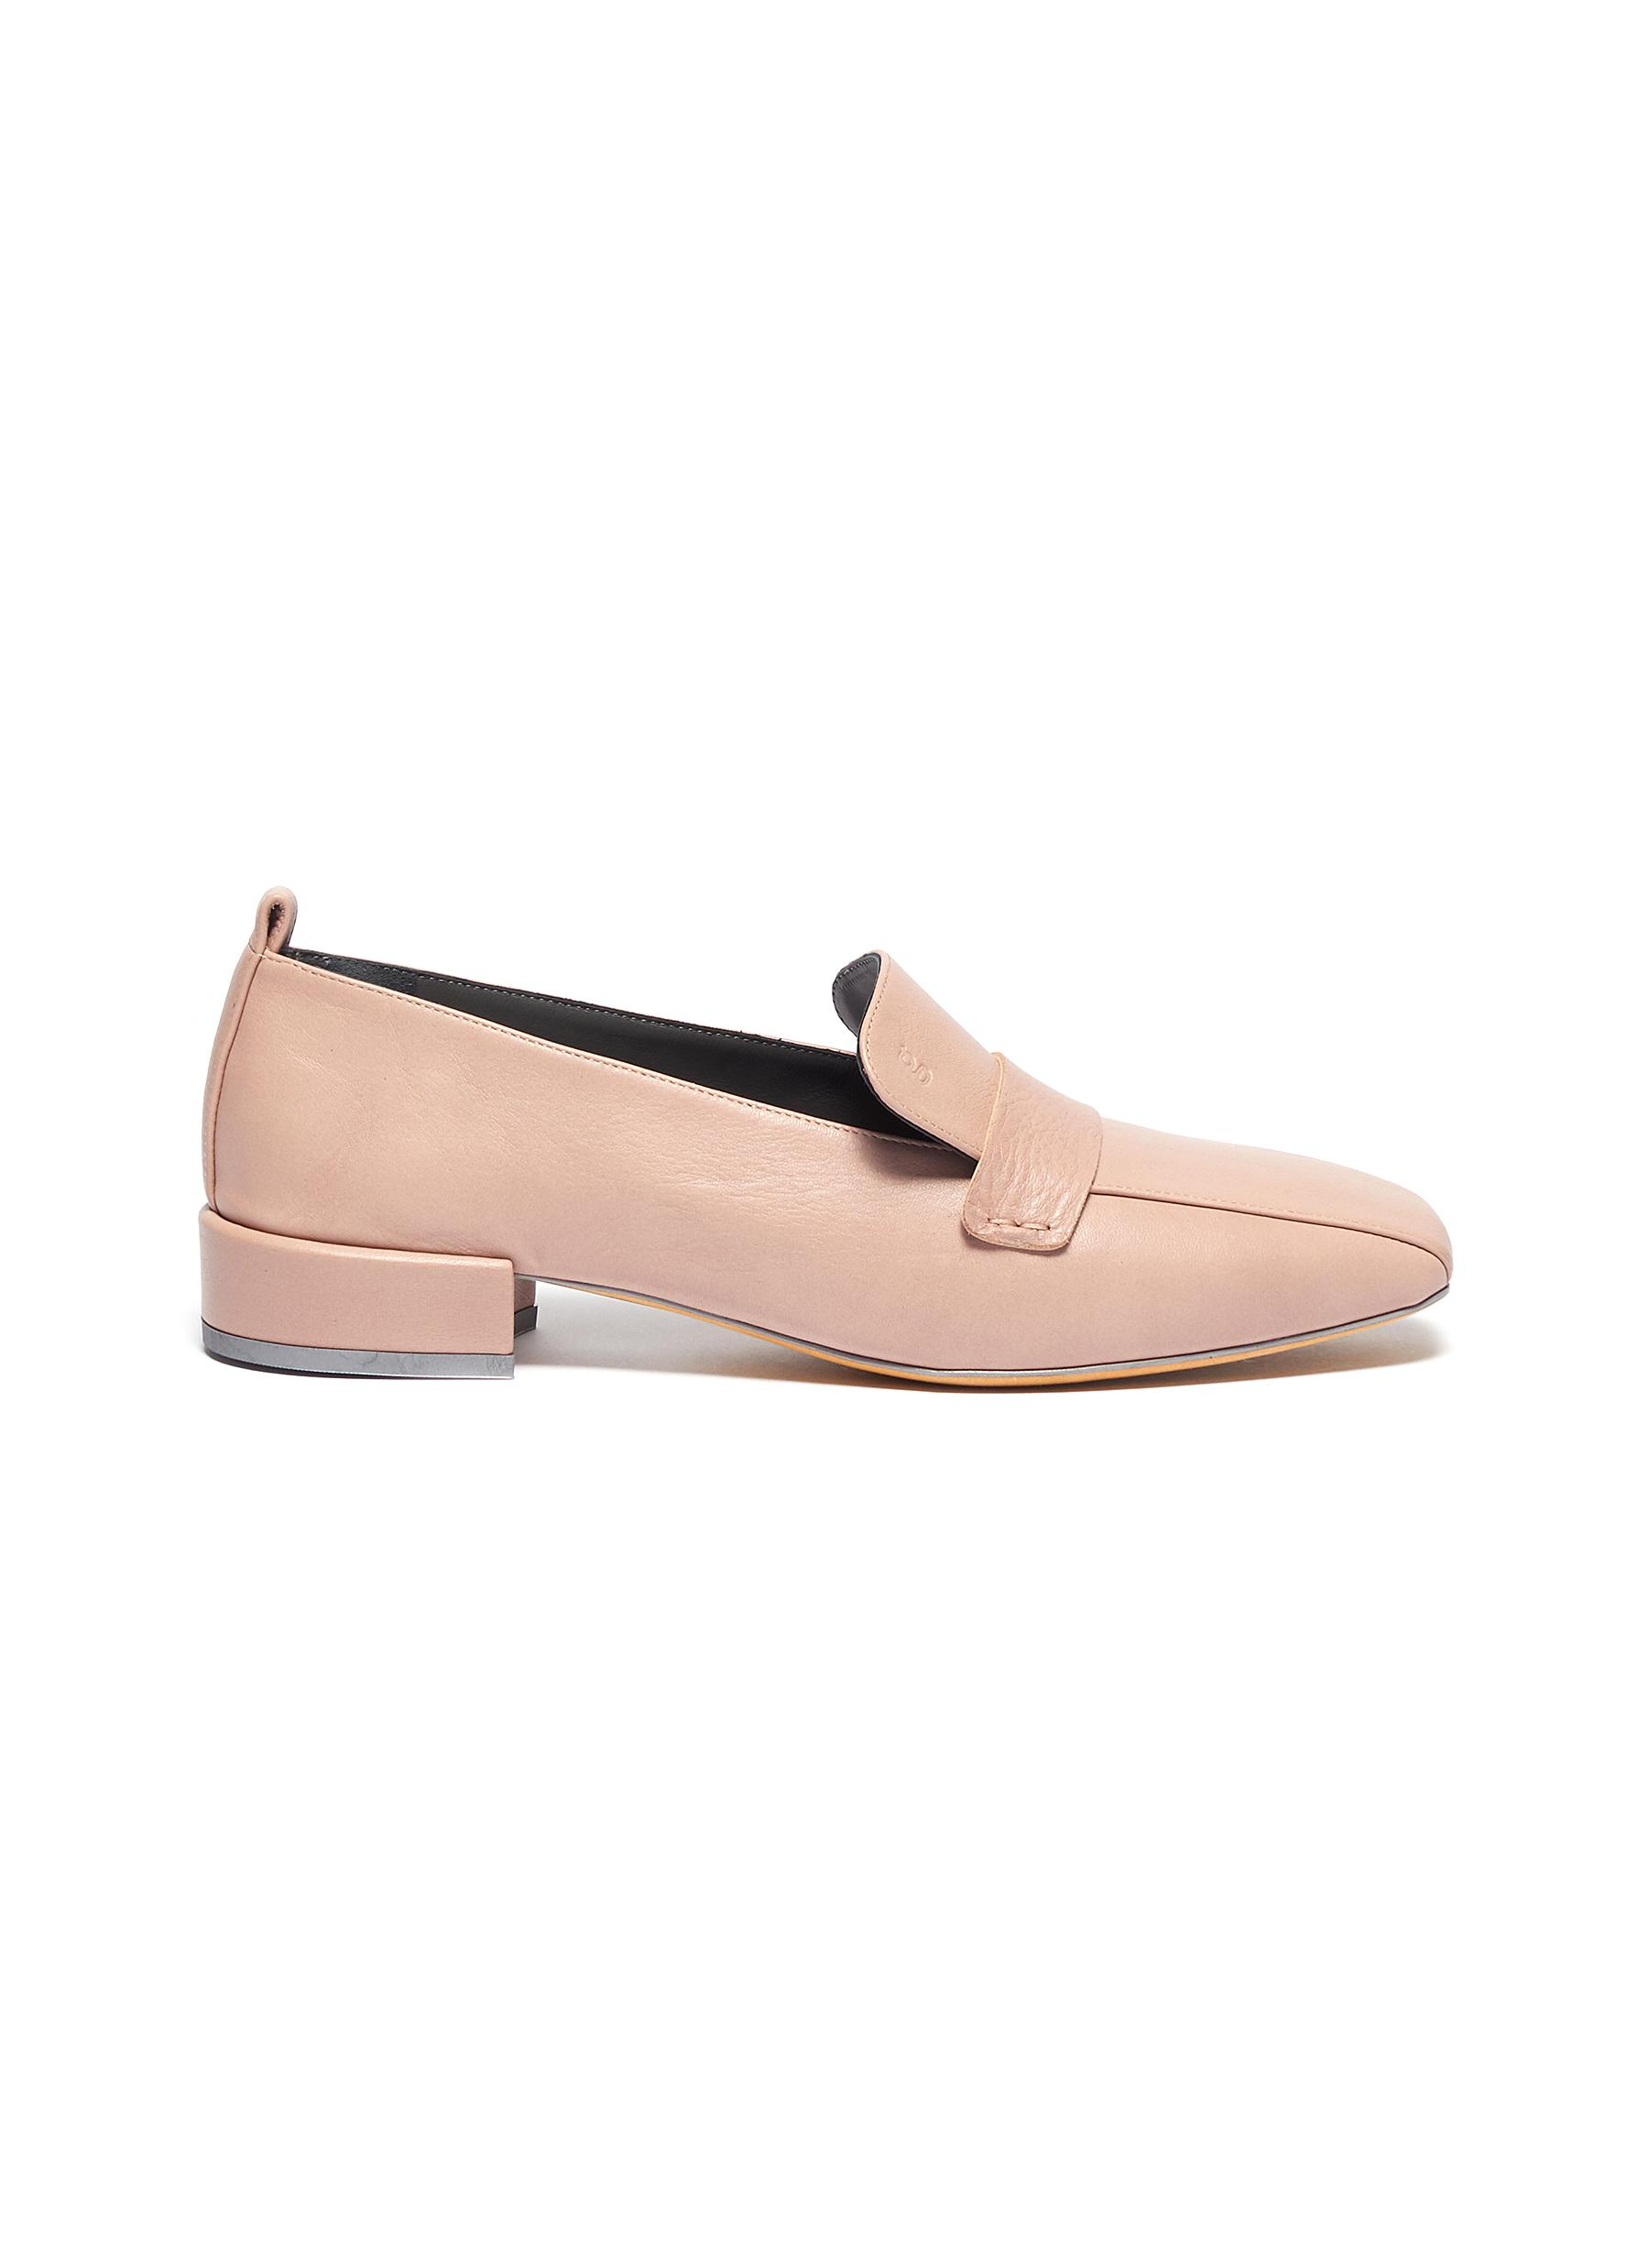 Comoda leather loafers by Gray Matters